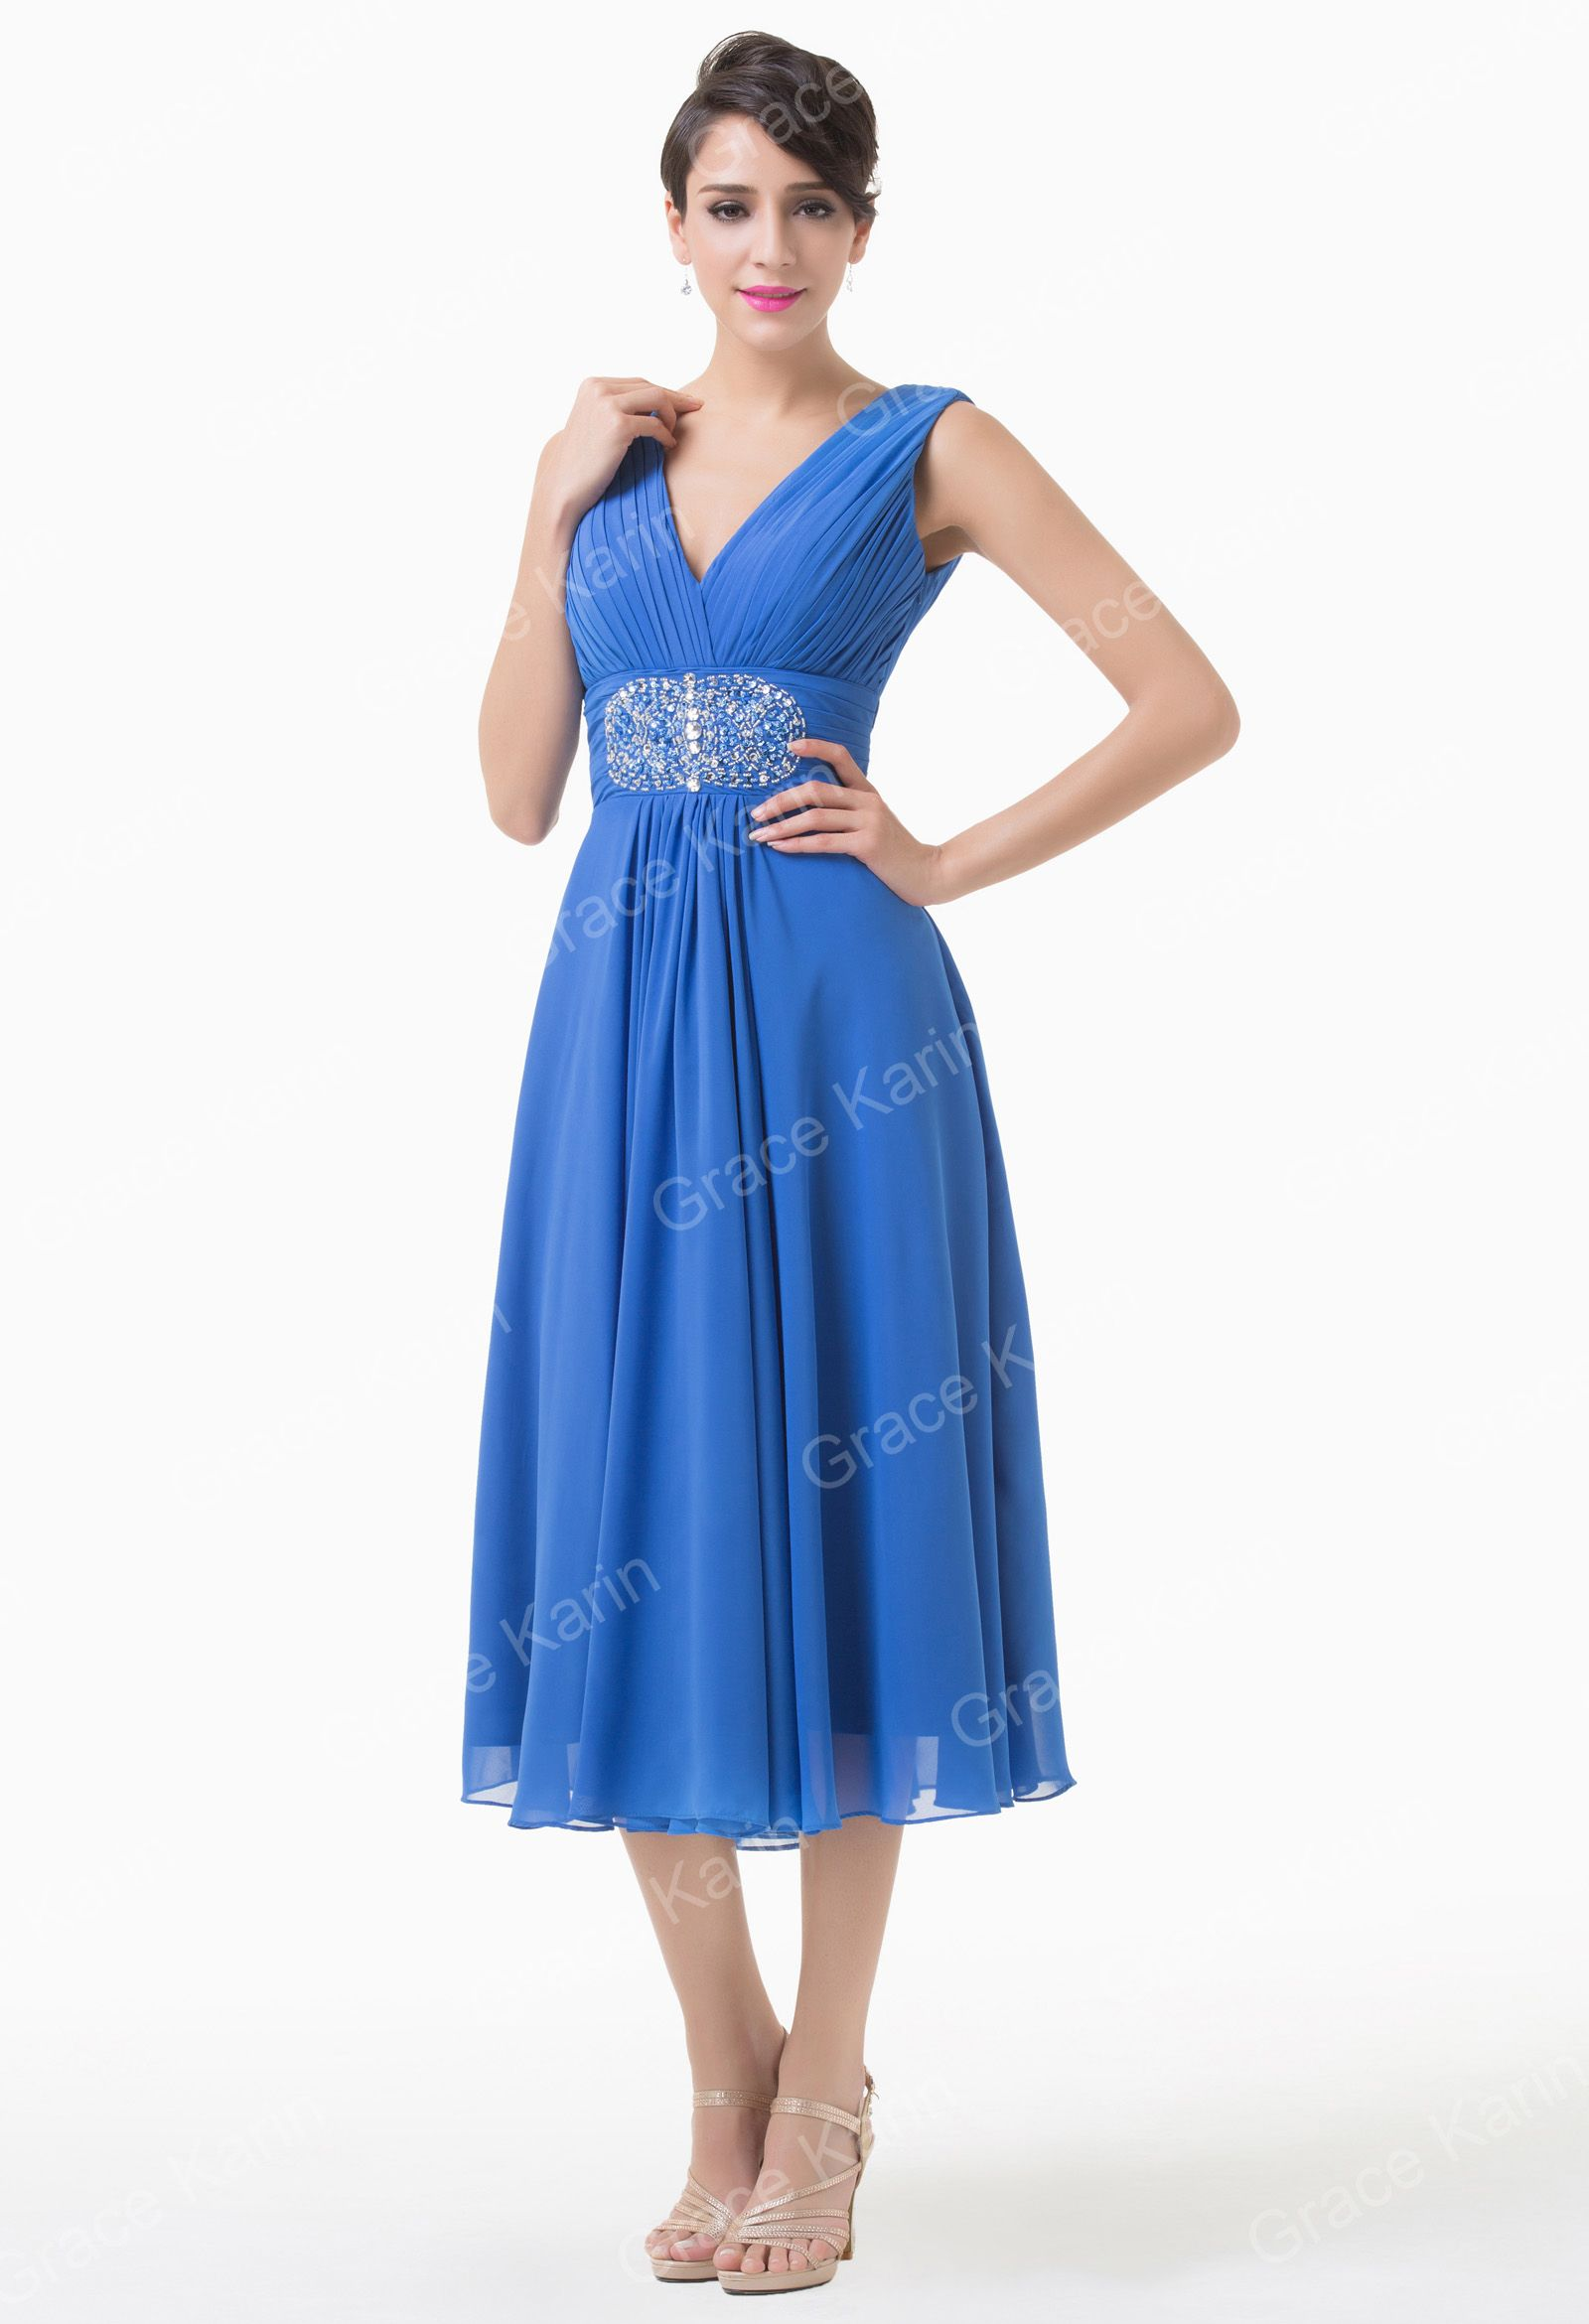 Short party gowns prom evening cocktail dress in stock size